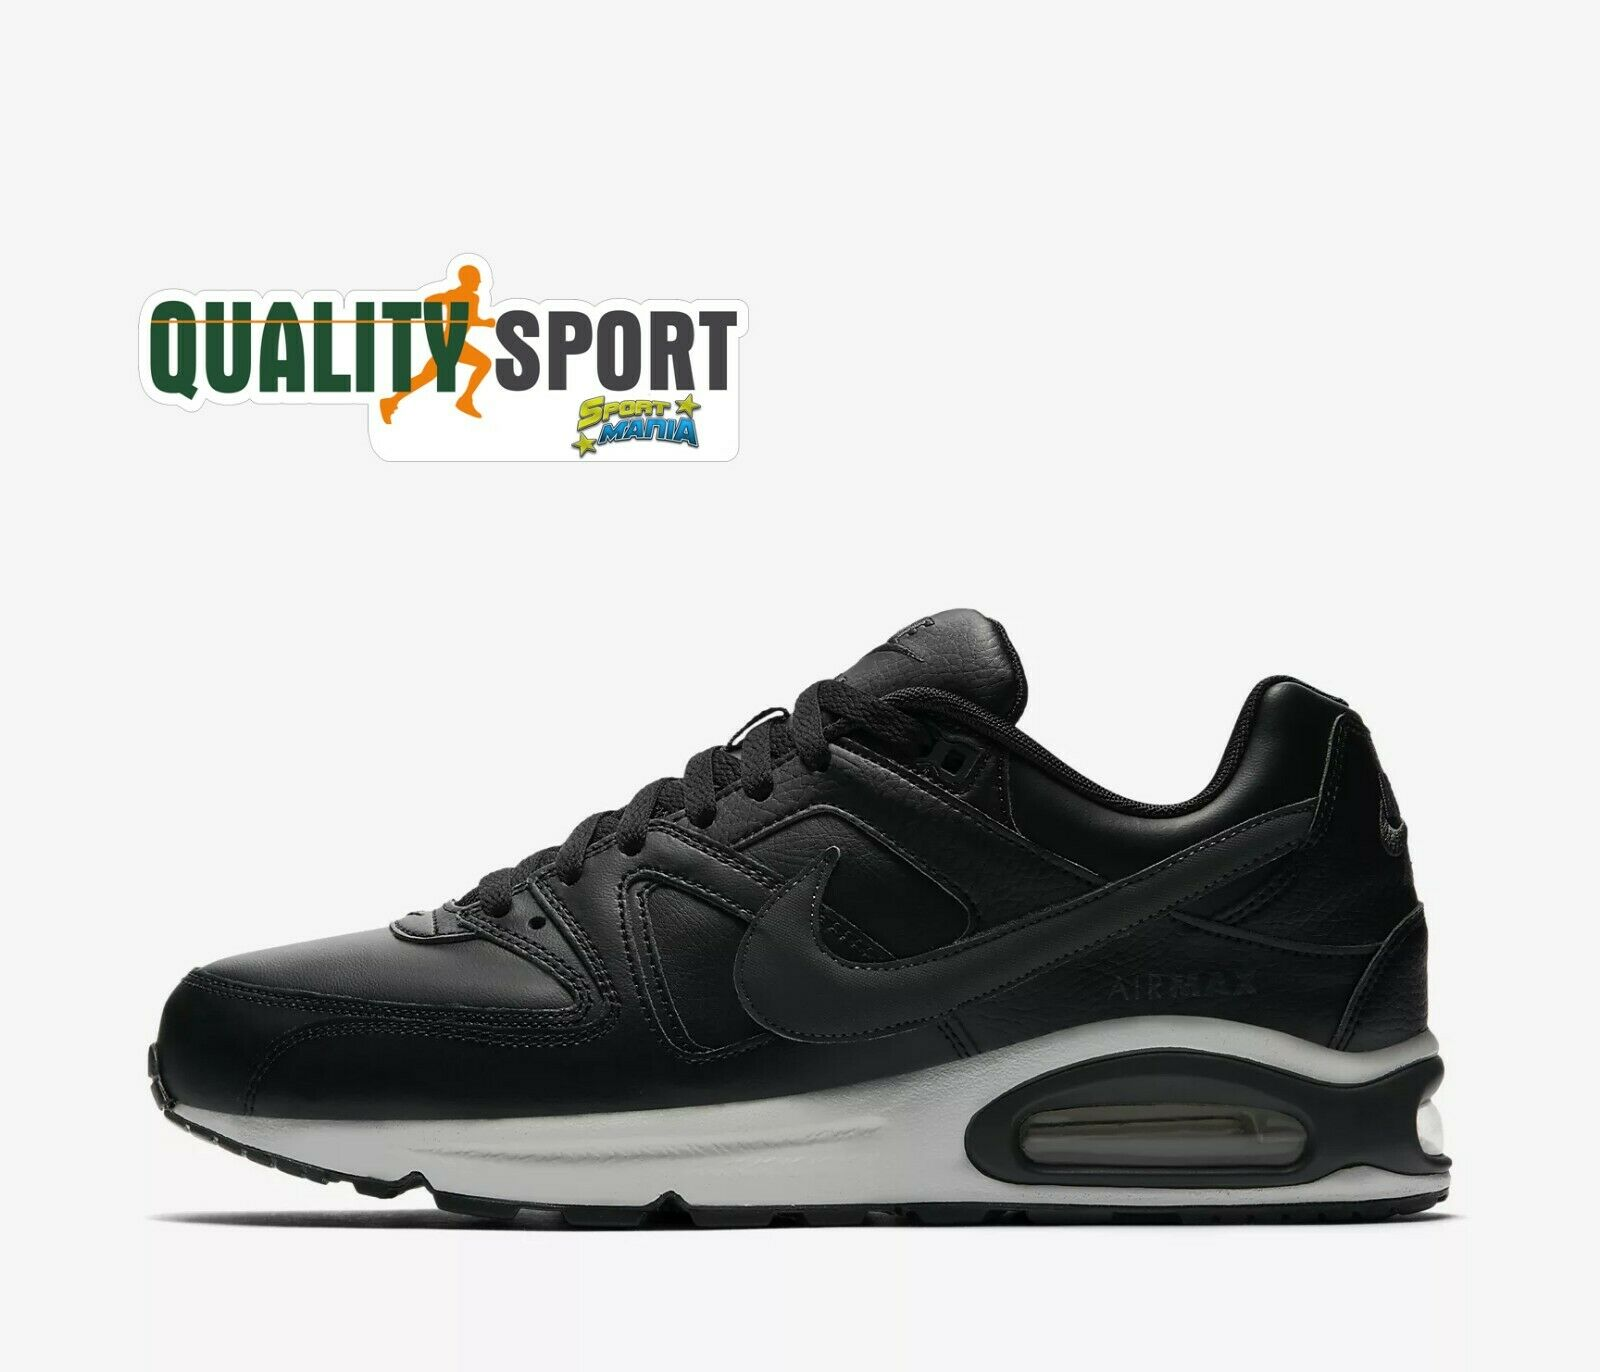 Nike air max command black leather sports shoes men sneakers 749760 001